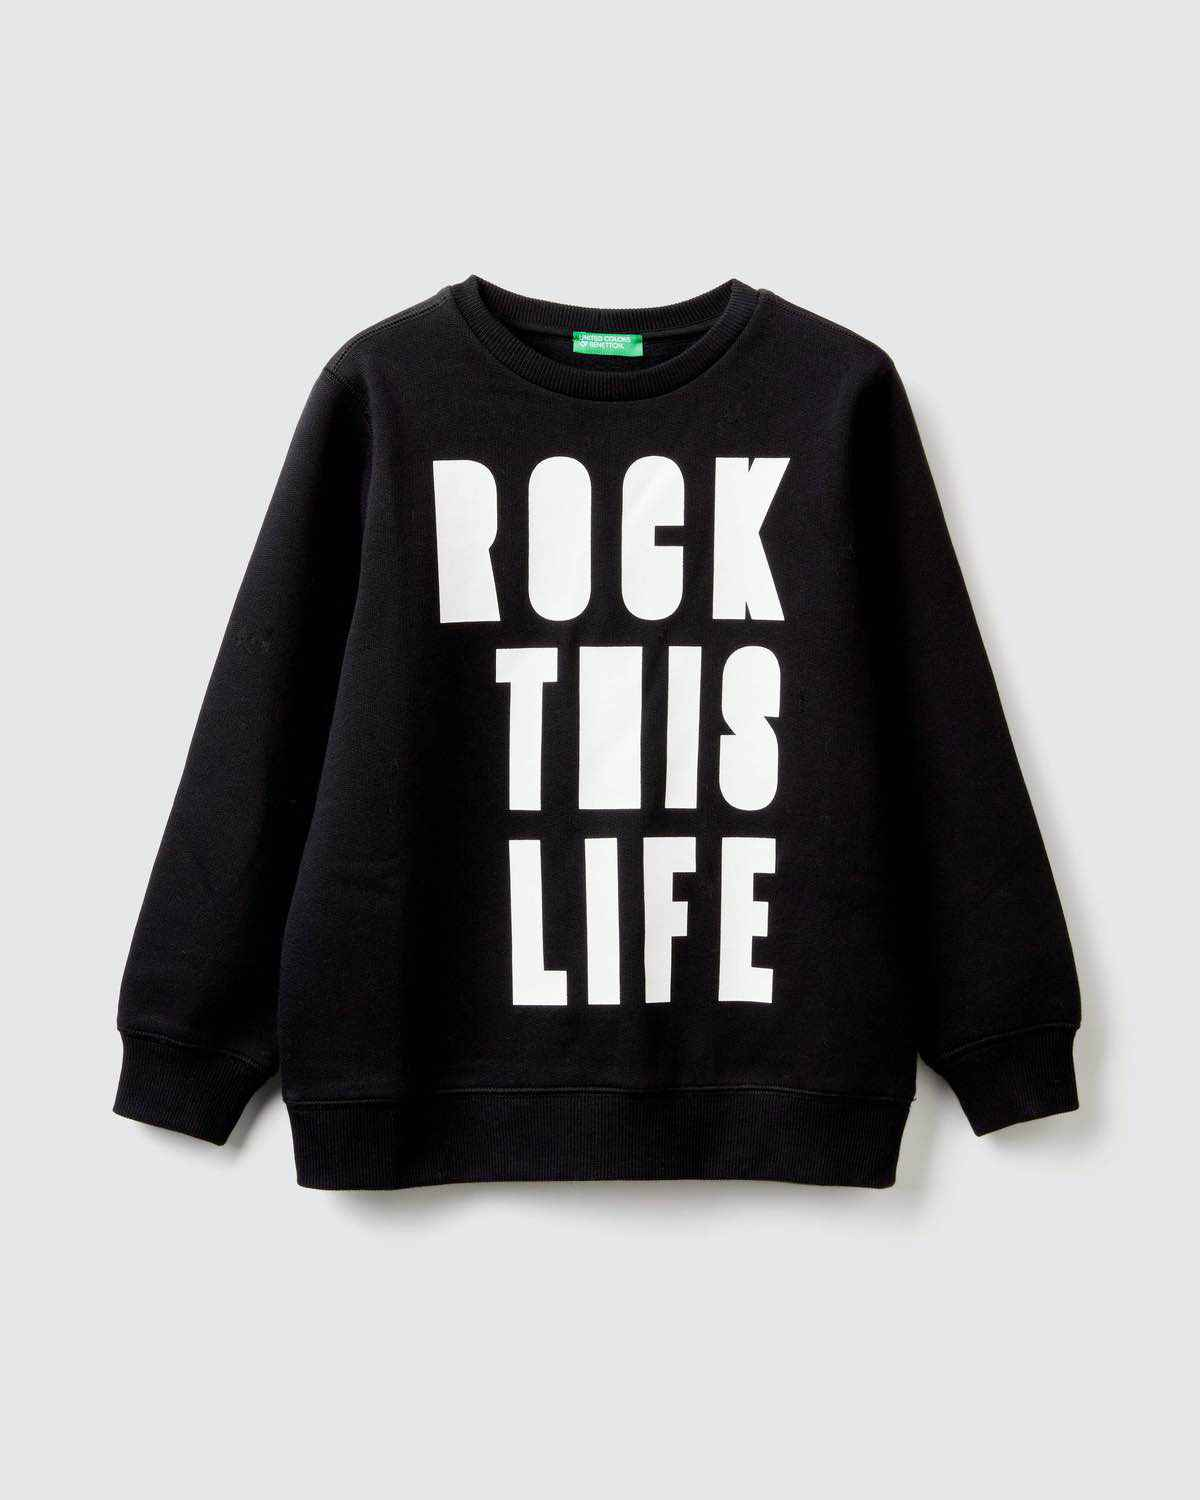 Rock This Life Yazılı Sweatshirt